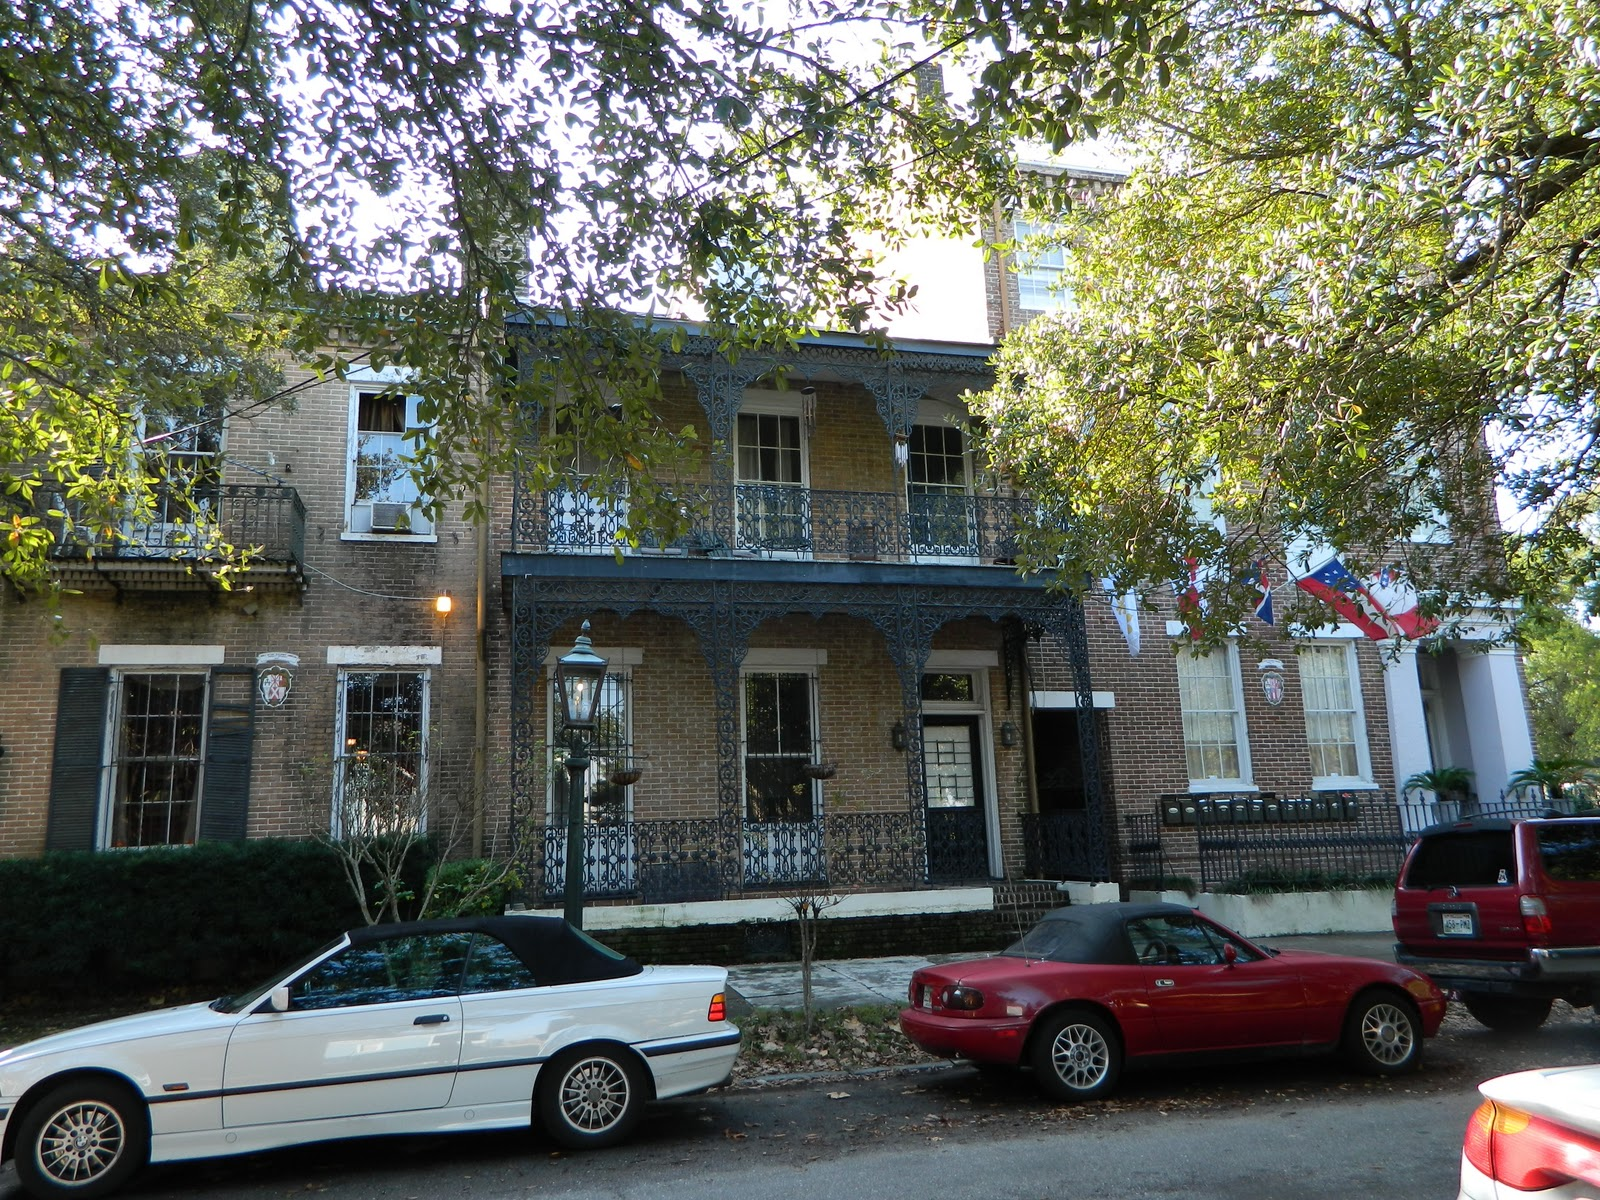 033 Downtown Mobile Al Homes on downtown ketchikan ak, downtown mountain home ar, downtown birmingham alabama, downtown fort pierce fl, downtown biloxi, downtown gulfport ms, downtown wrightsville beach nc, downtown marco island fl, downtown north platte ne, downtown greenville nc, downtown mission tx, downtown cape cod ma, downtown miami beach fl, downtown st joseph mo, downtown ponce pr, downtown miles city mt, downtown raleigh nc, downtown fayetteville nc, downtown tampa bay fl, downtown mcalester ok,